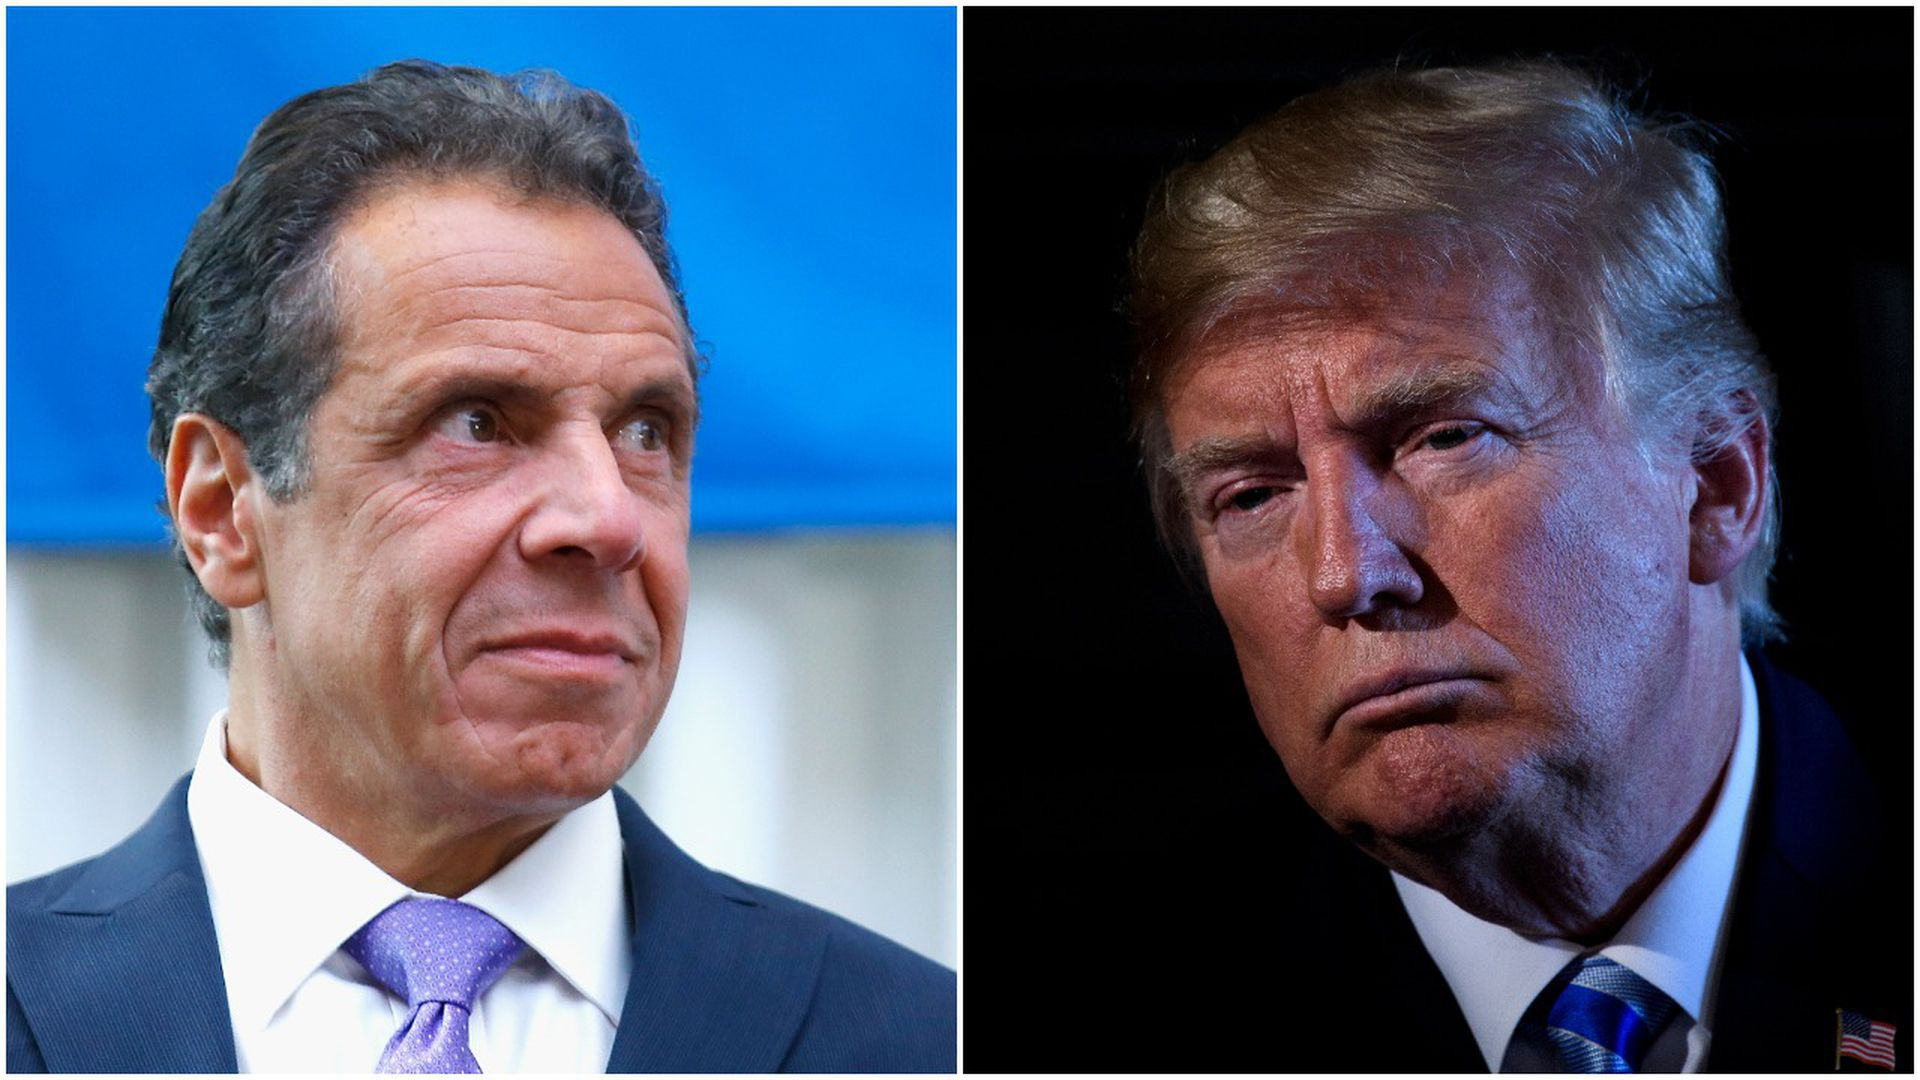 Side by side photo of Andrew Cuomo and Donald Trump